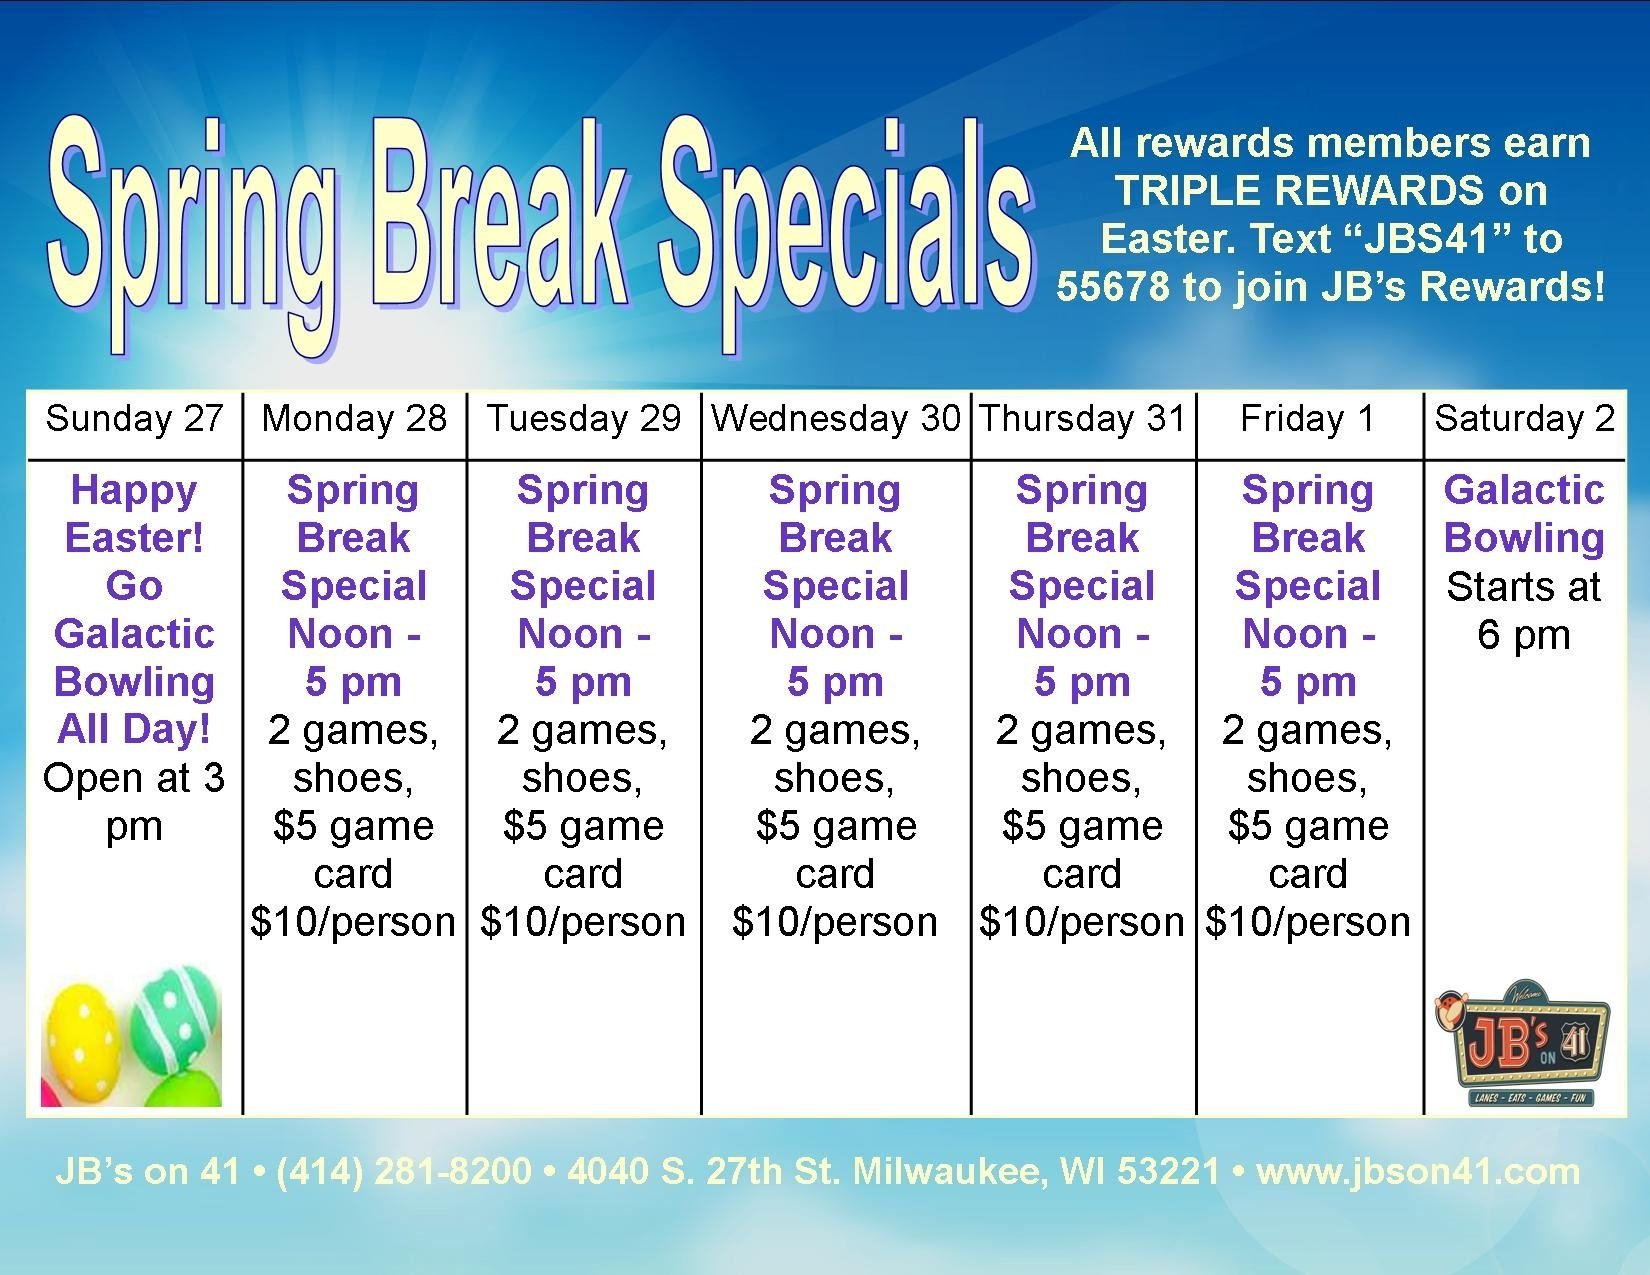 10 Attractive Spring Break Ideas For Couples spring break family specials jbs on 41 milwaukee wi 2020